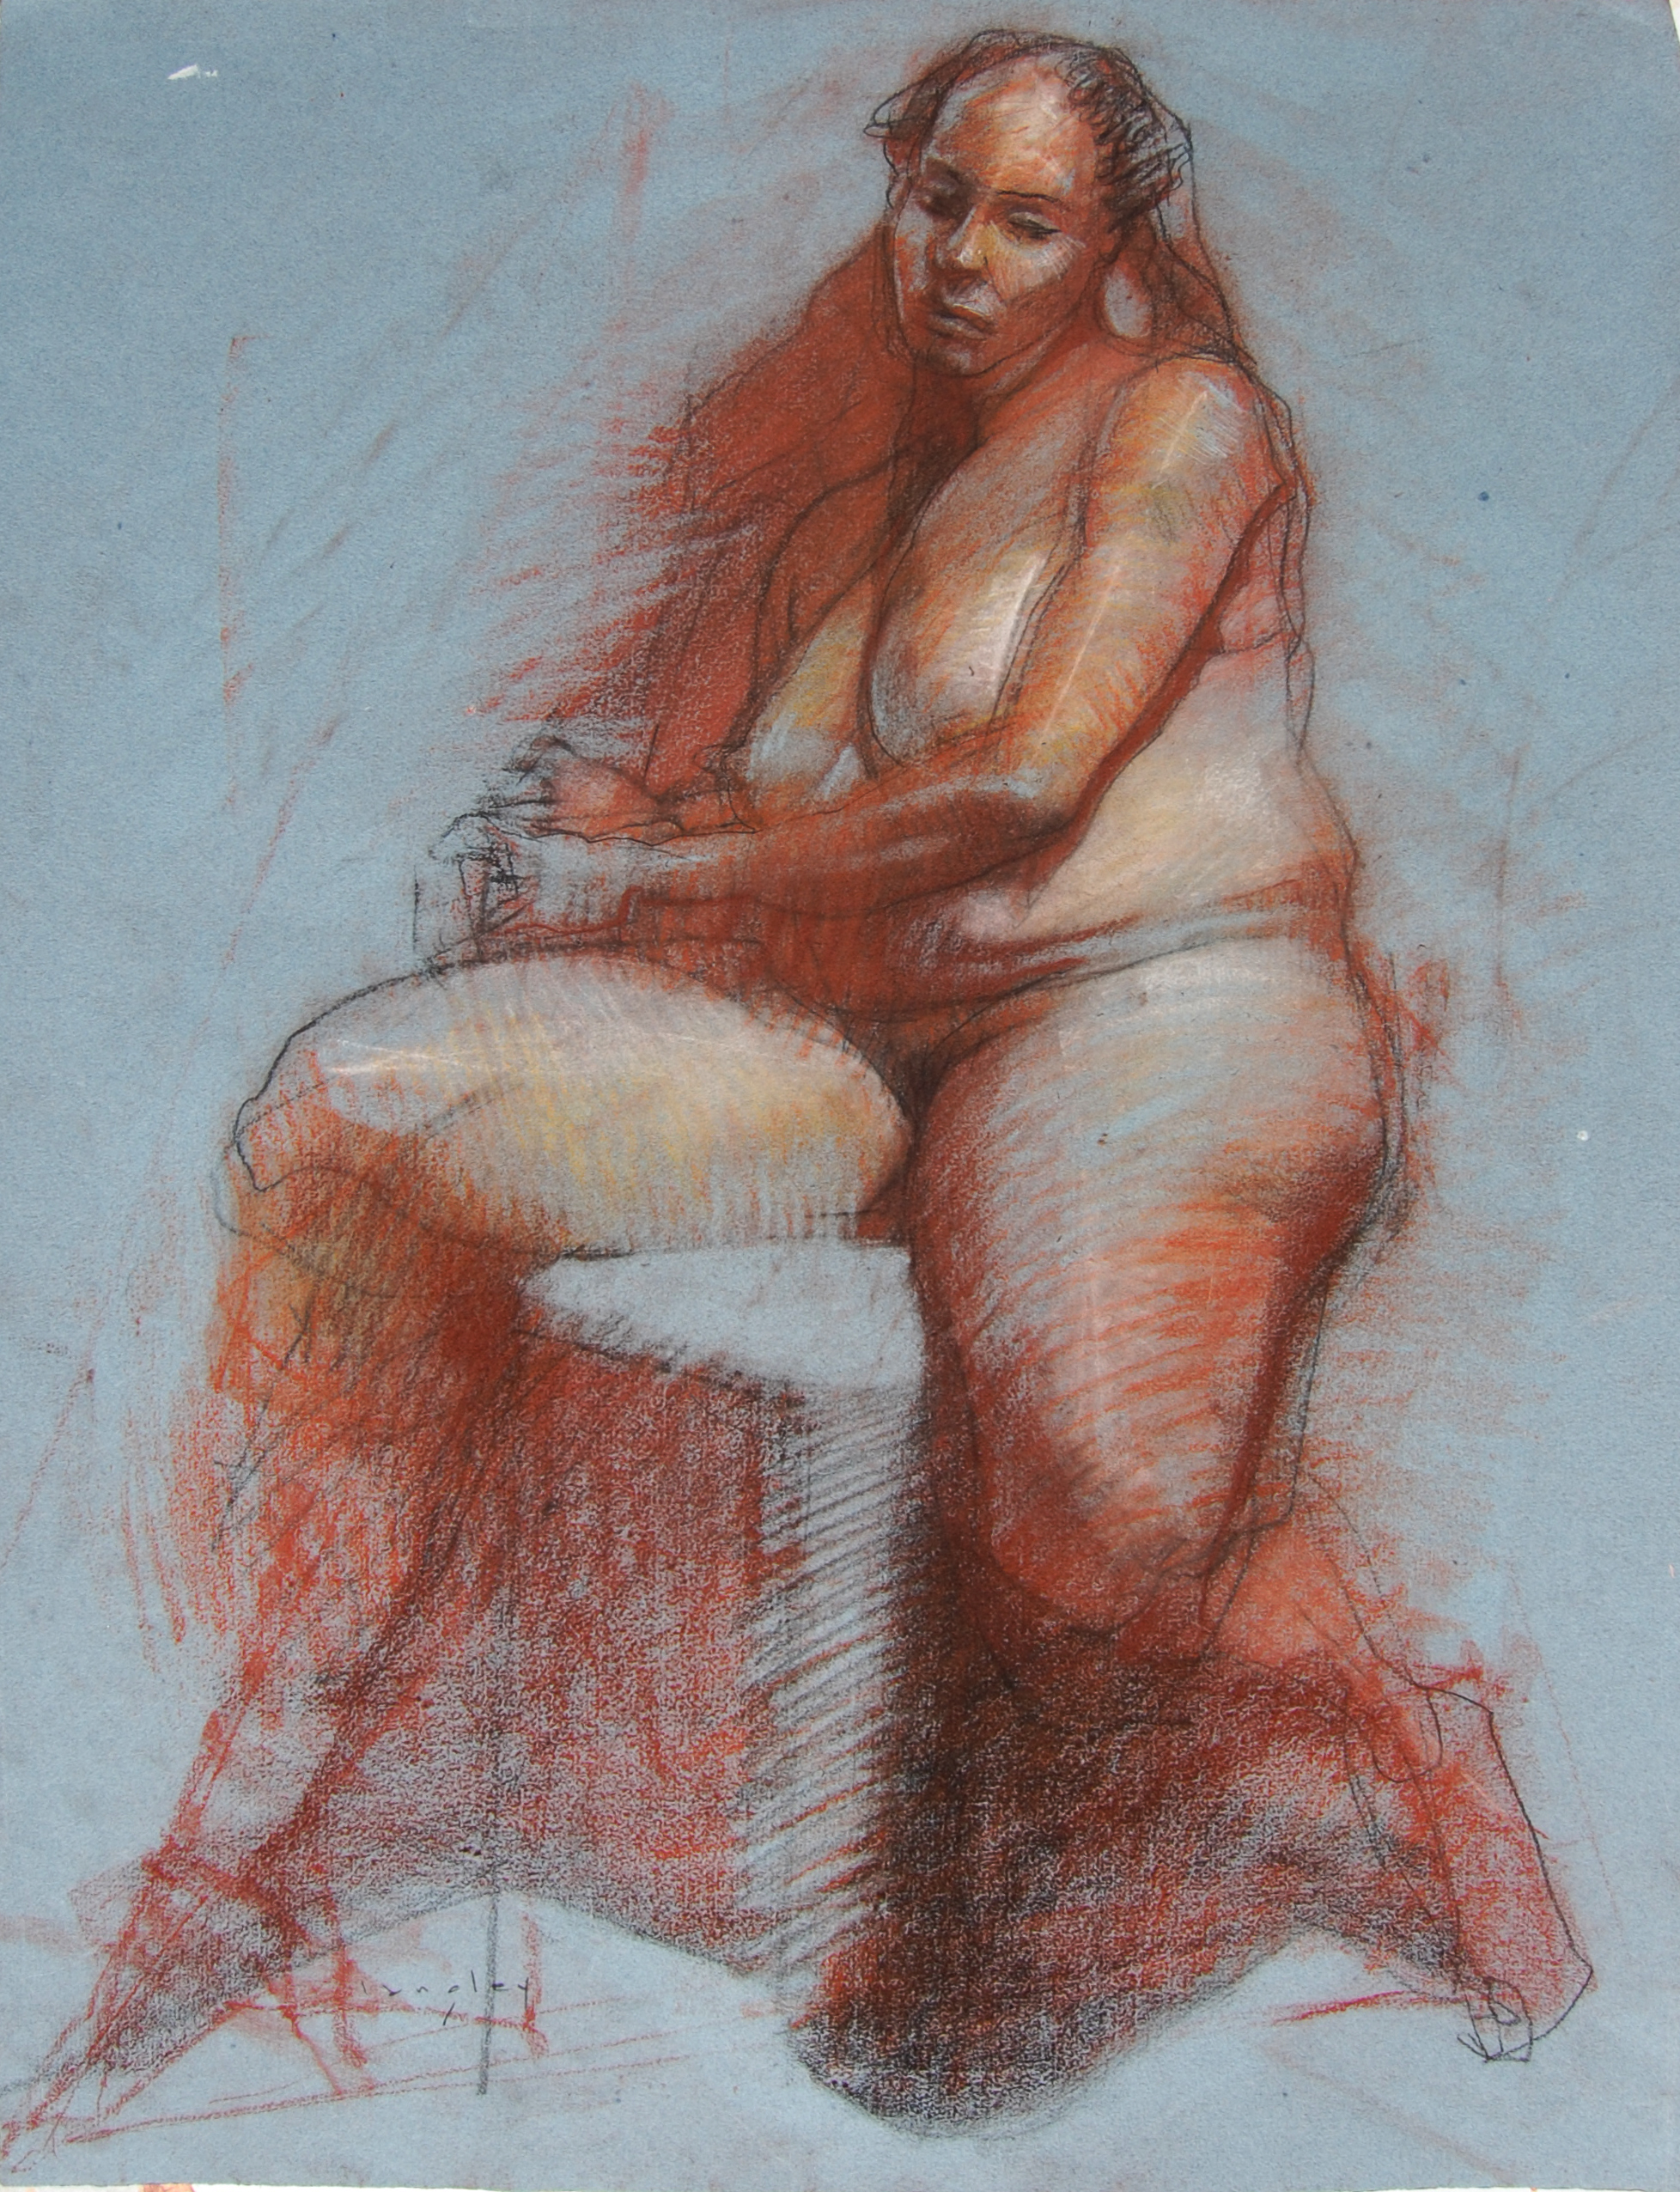 langley seated nude 24x18 conte 2016 africa.jpg